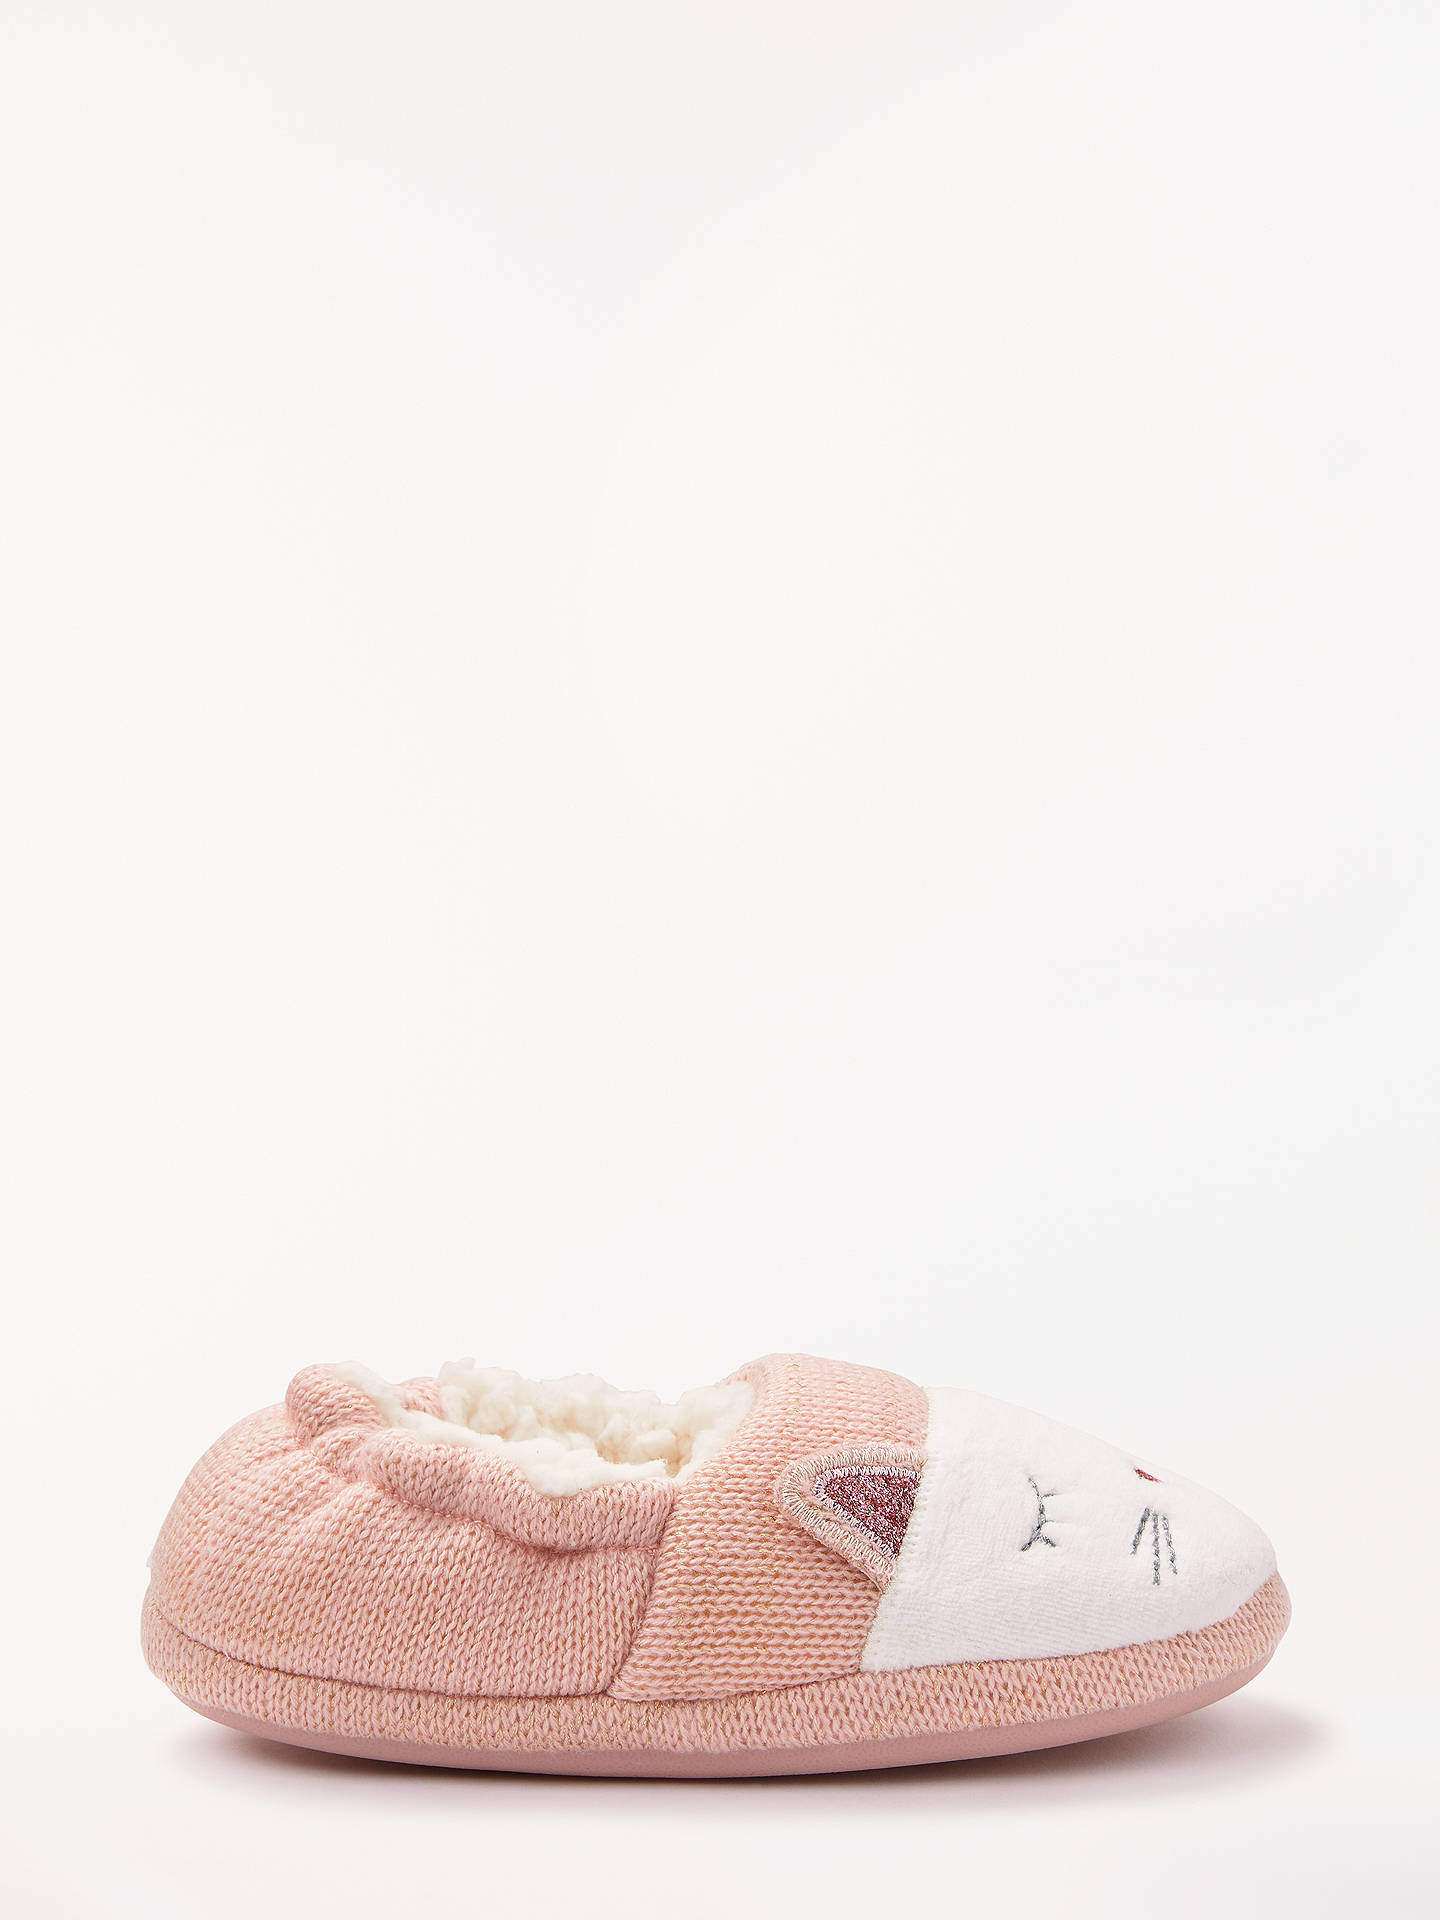 BuyJohn Lewis & Partners Children's Cat Slippers, Pink, 8 Jnr Online at johnlewis.com